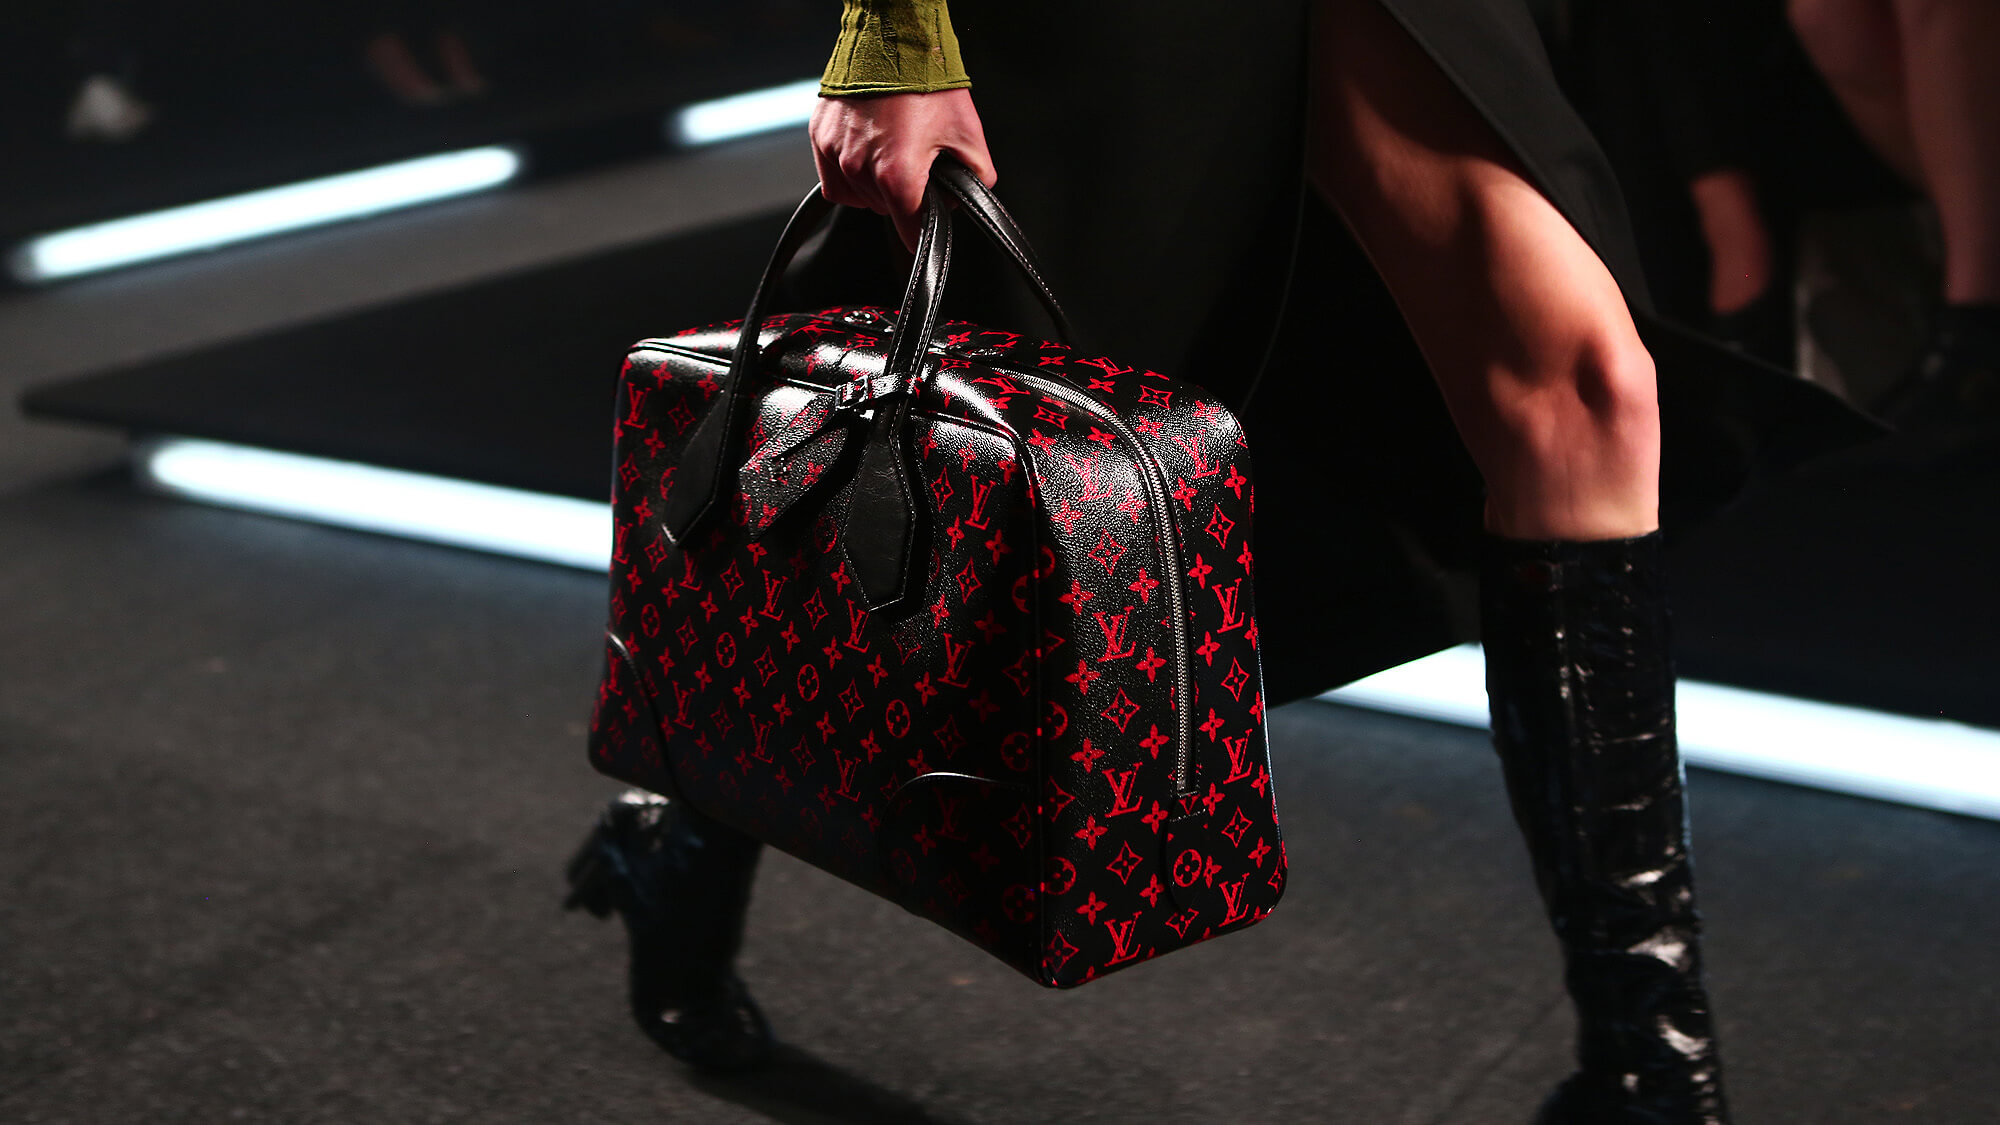 2_louis-vuitton-handbag-at-fashion-show